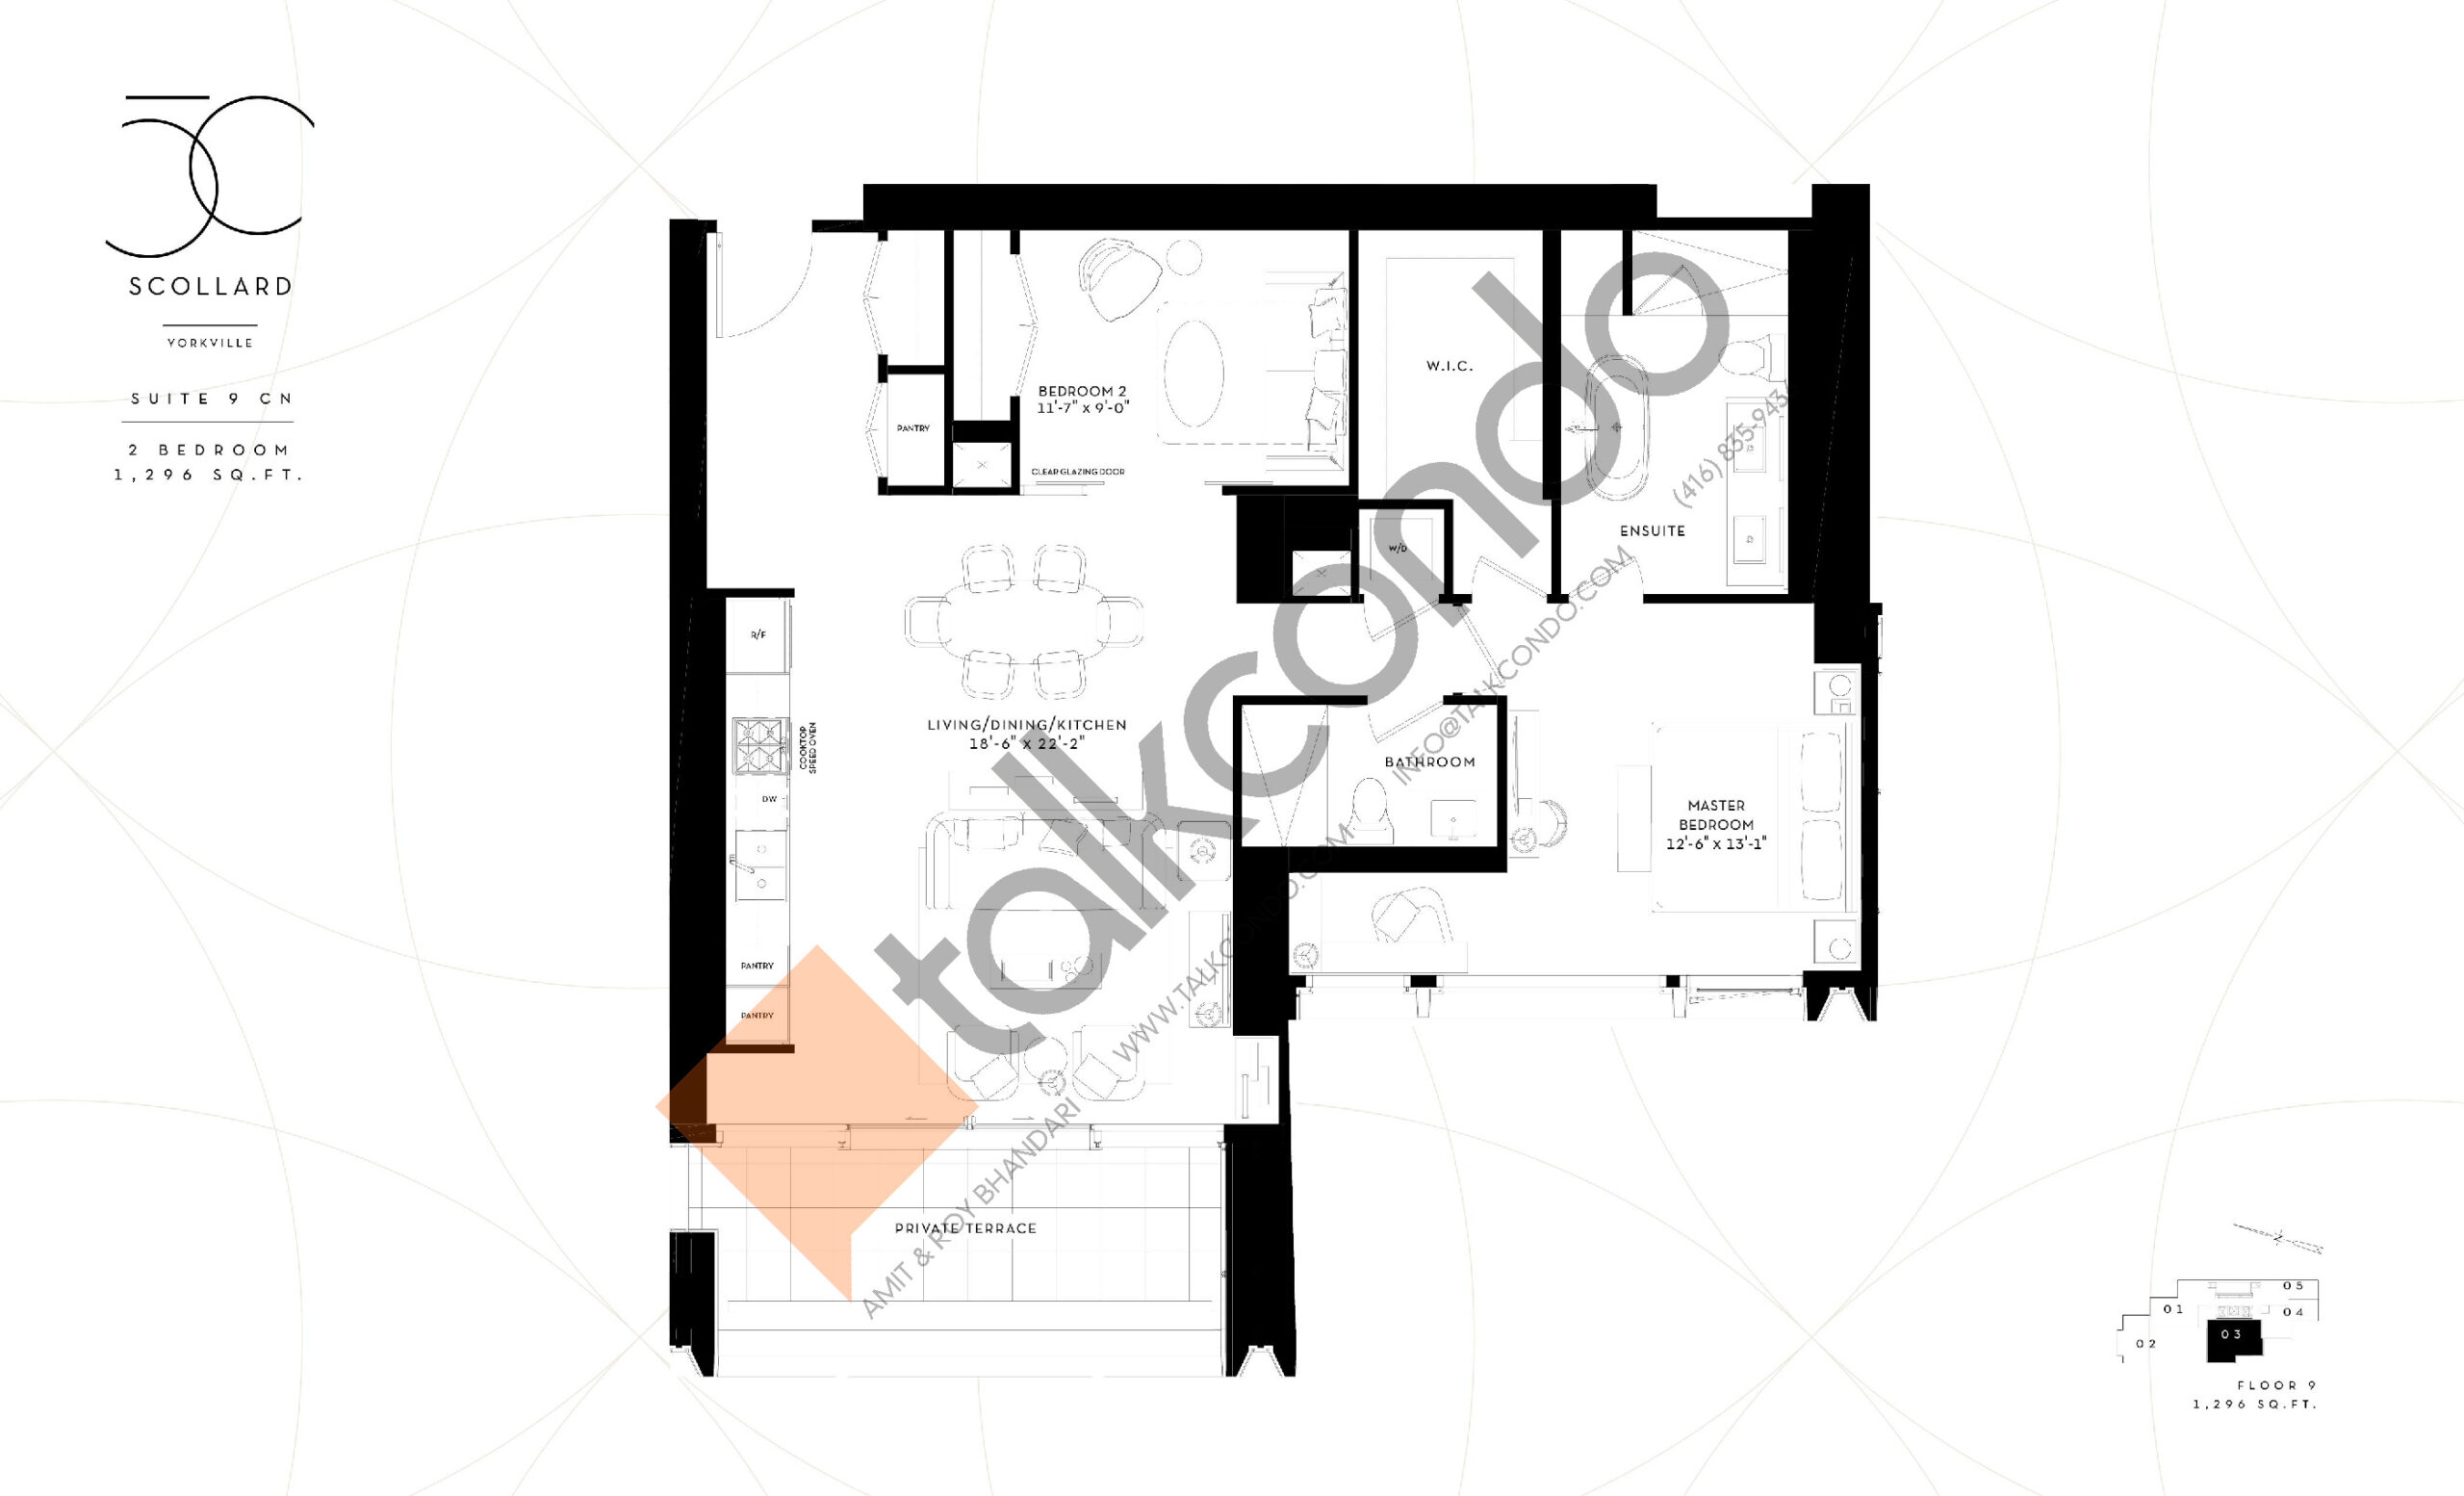 Suite 9 CN Floor Plan at Fifty Scollard Condos - 1296 sq.ft